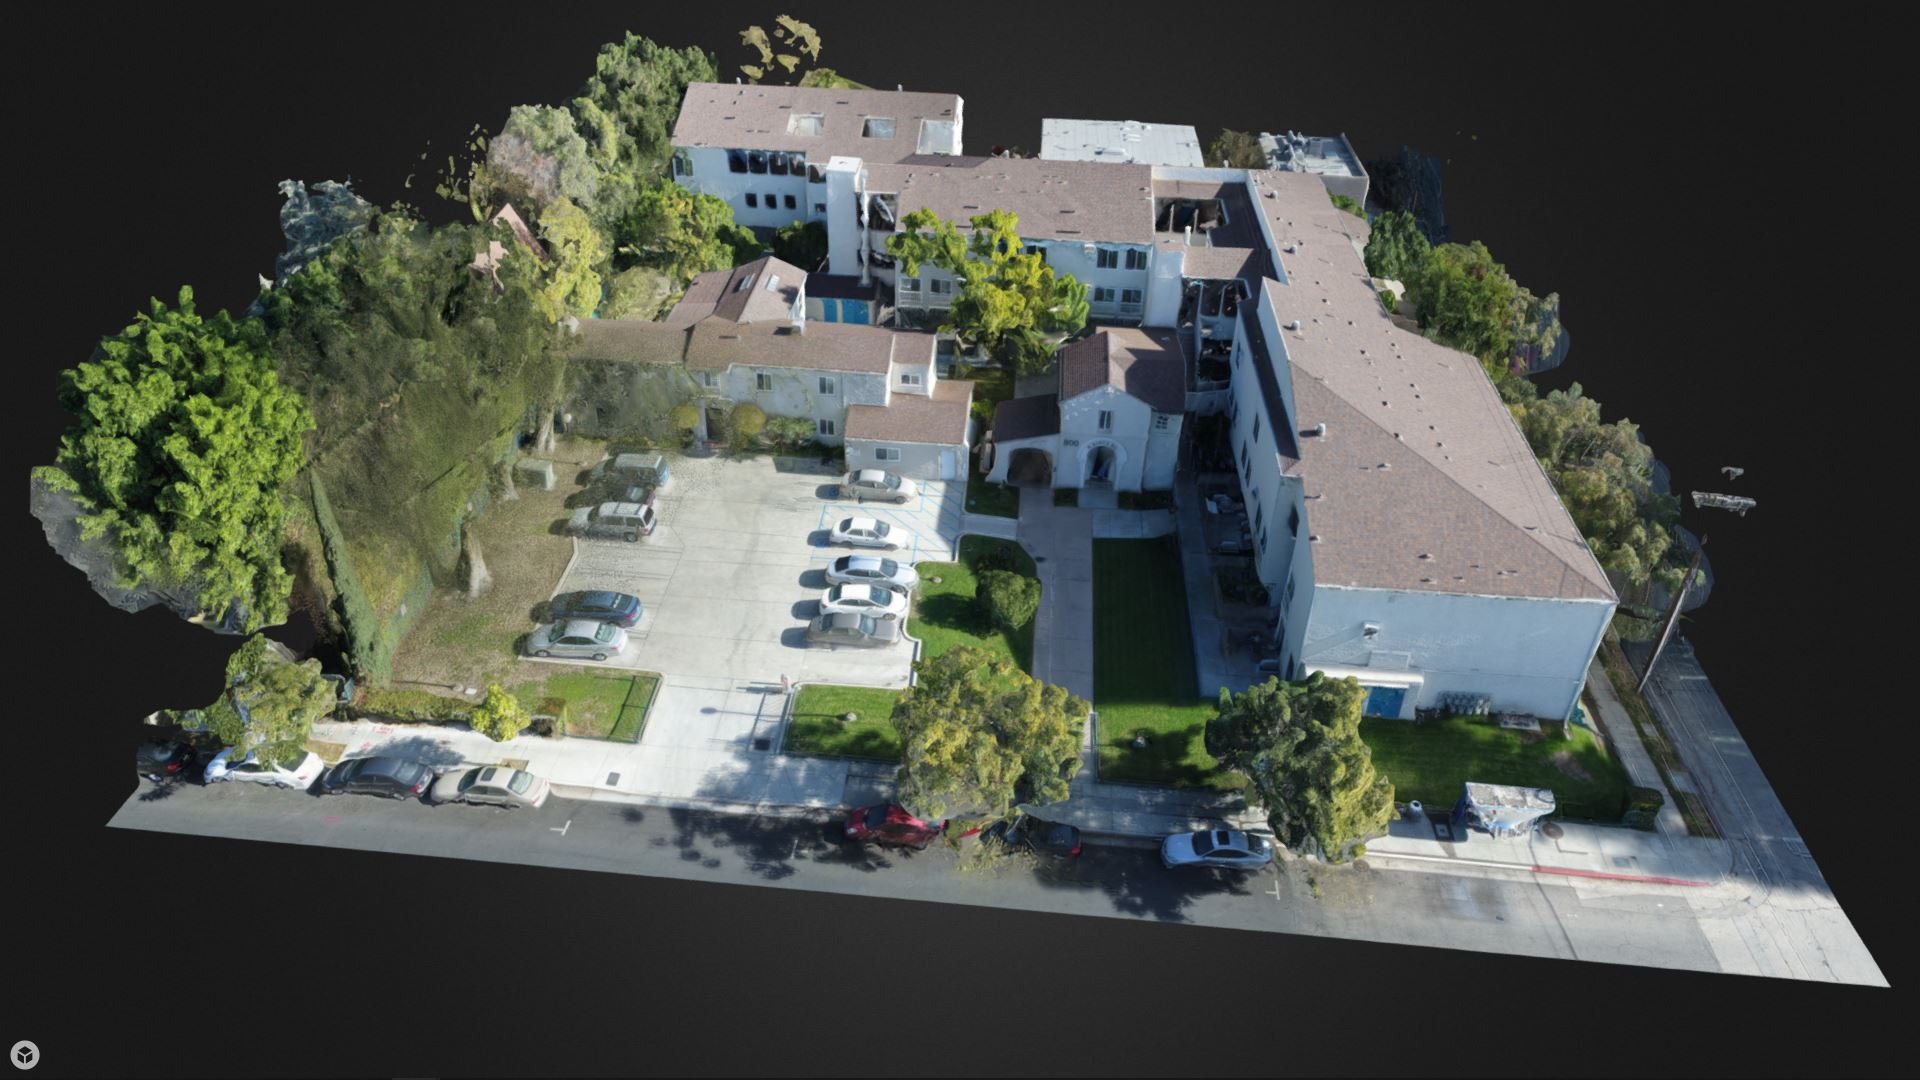 3D model of a residential community